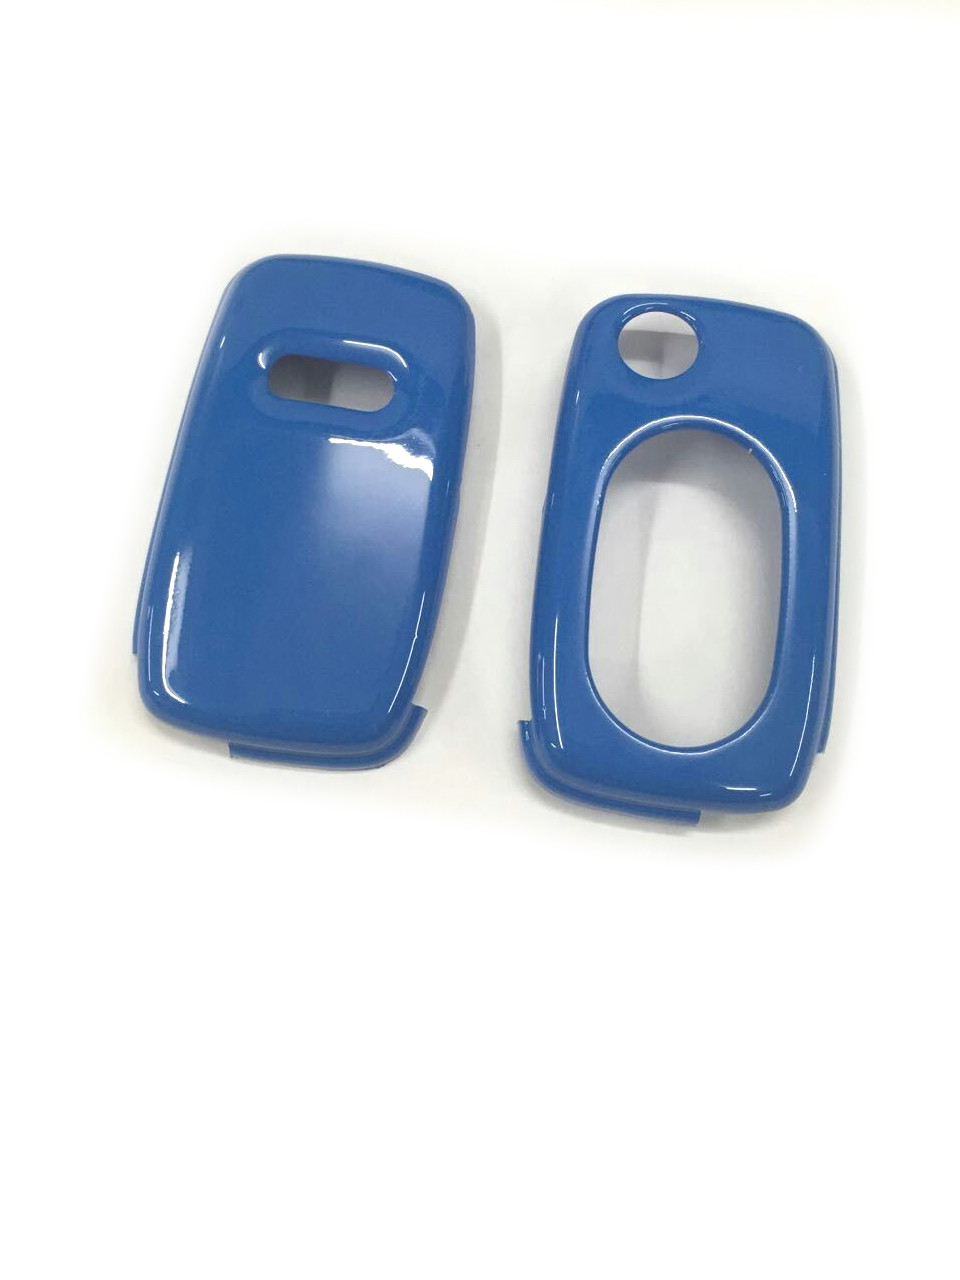 Gloss Blue Color Flip <font><b>Key</b></font> <font><b>Remote</b></font> <font><b>Key</b></font> Protection Case For <font><b>Audi</b></font> A3 8L A4 B5 B6 TT MK1 <font><b>A6</b></font> <font><b>C5</b></font> image